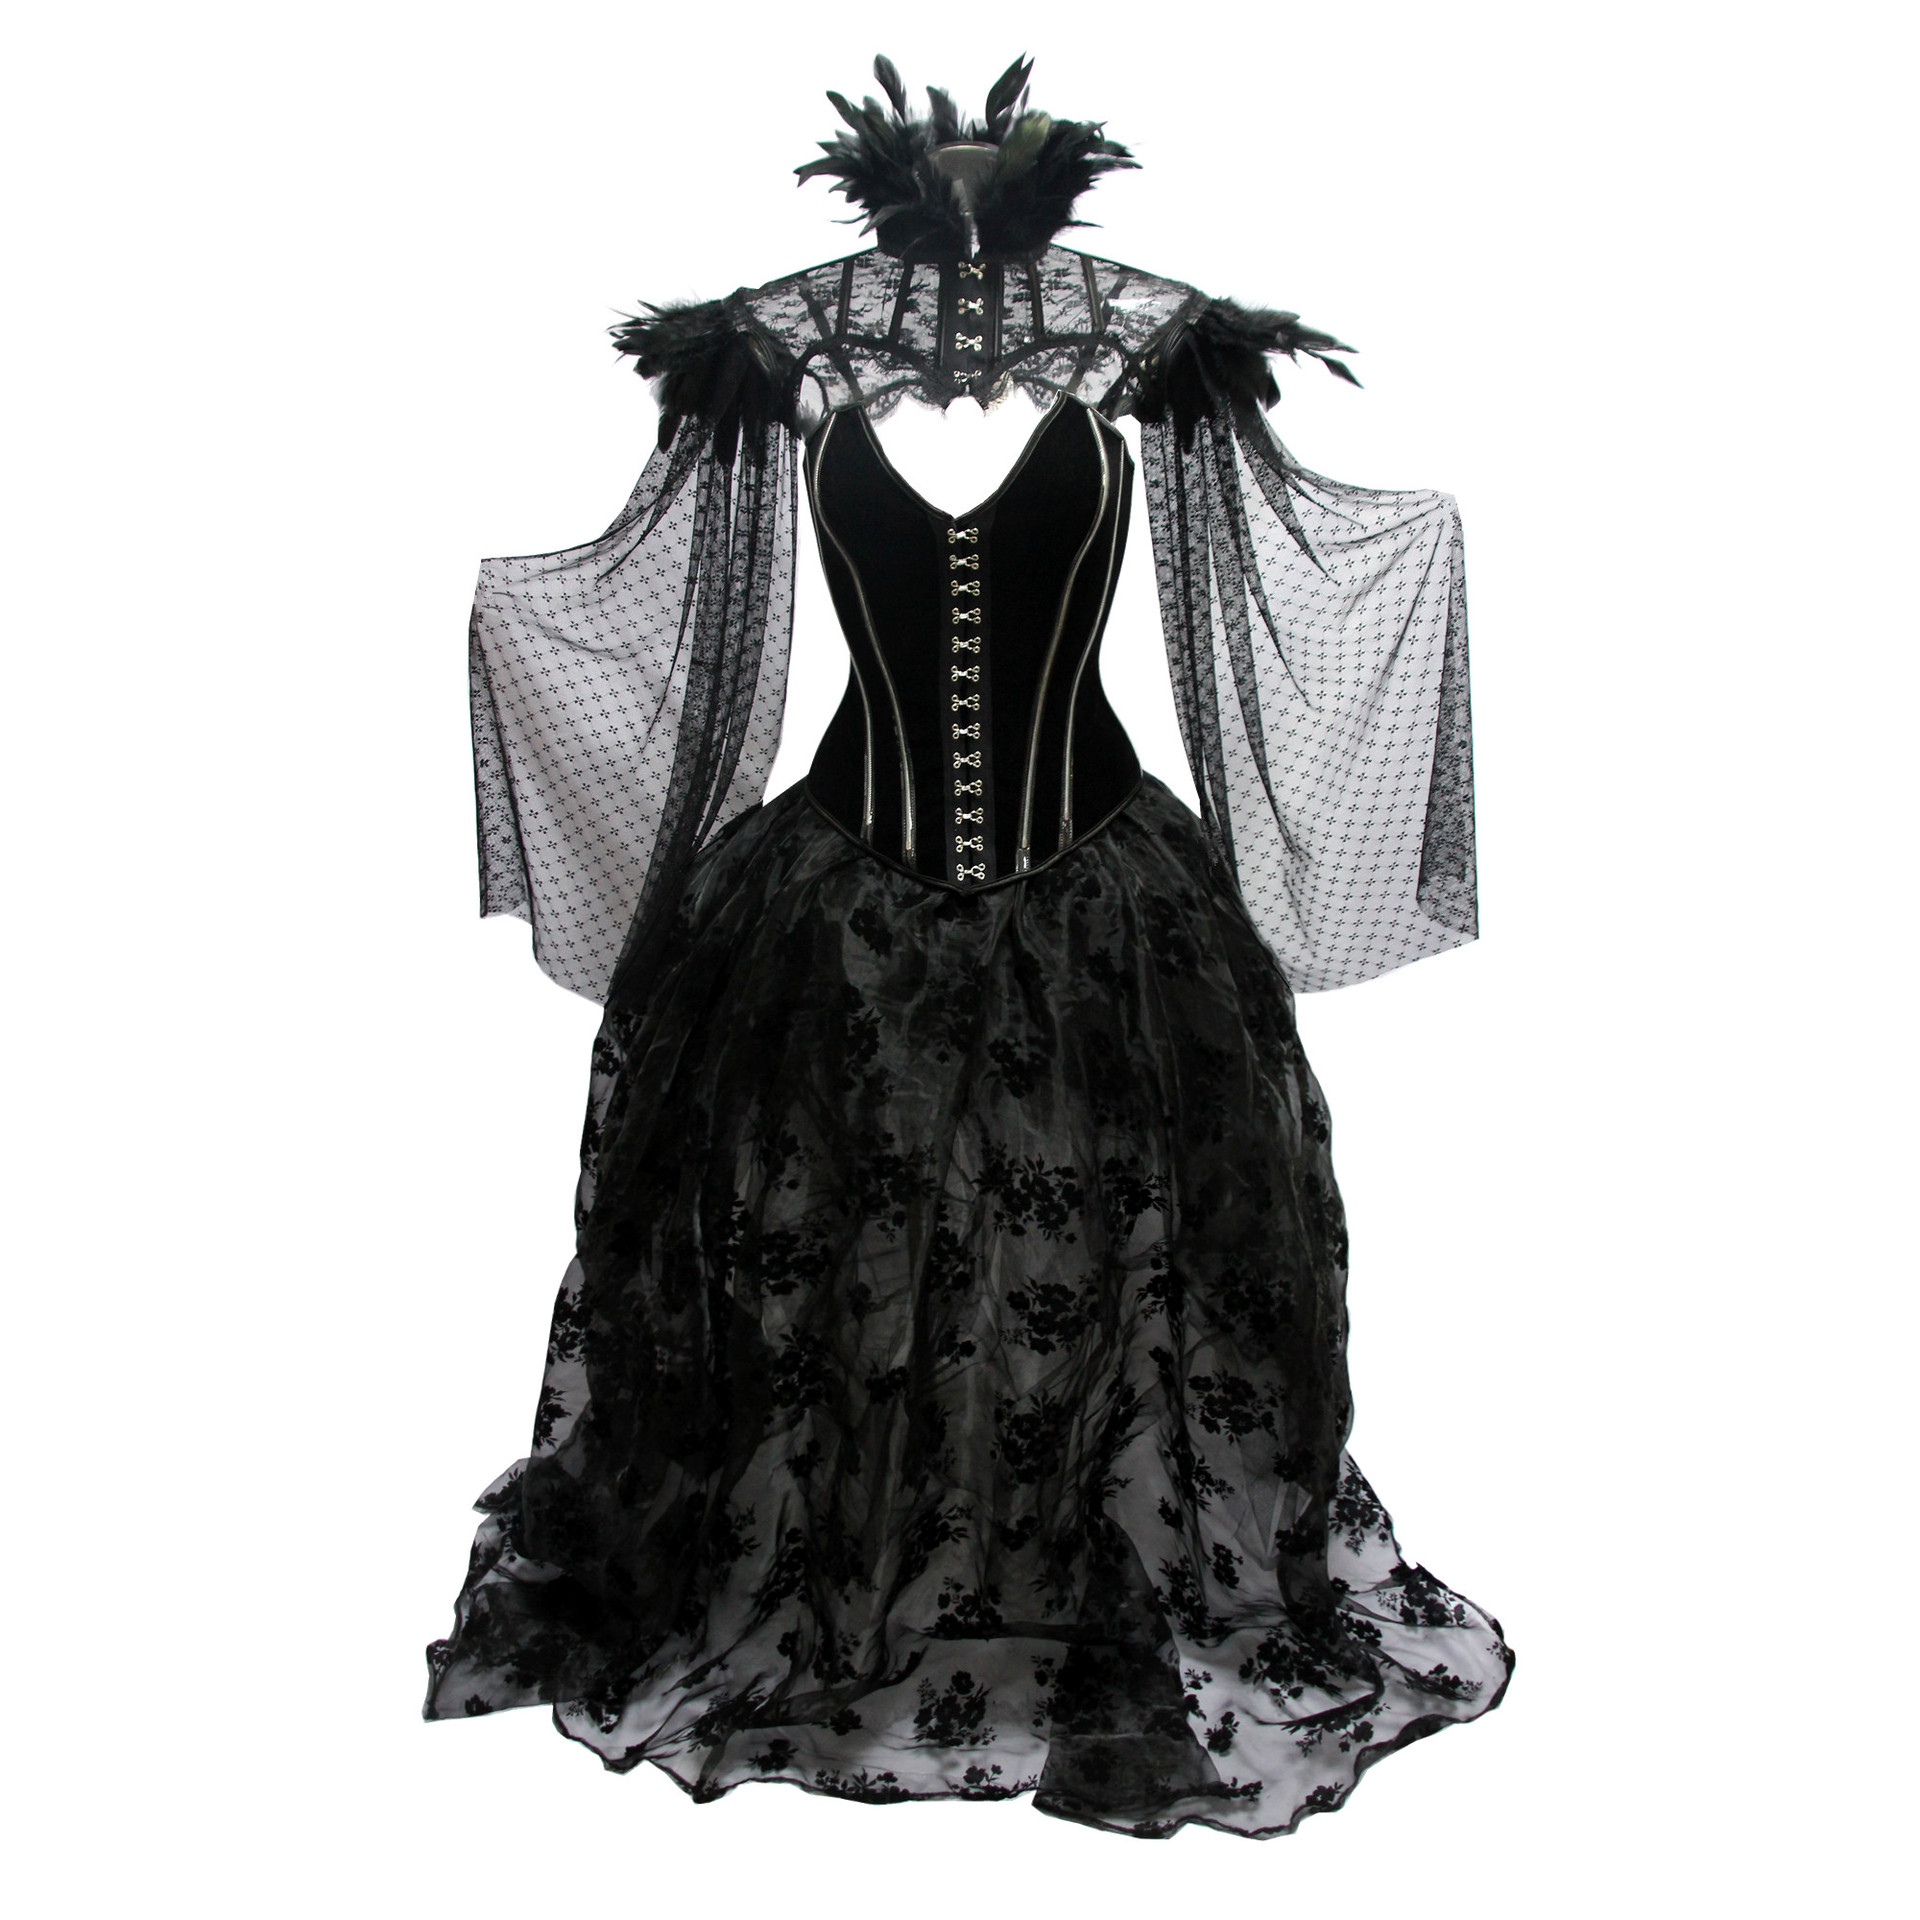 Floral Pattern Halloween Victorian Corset Dress Gothic Lolitacostume Steampunk Korsett For Women Sexy Vintage Burlesque Costume